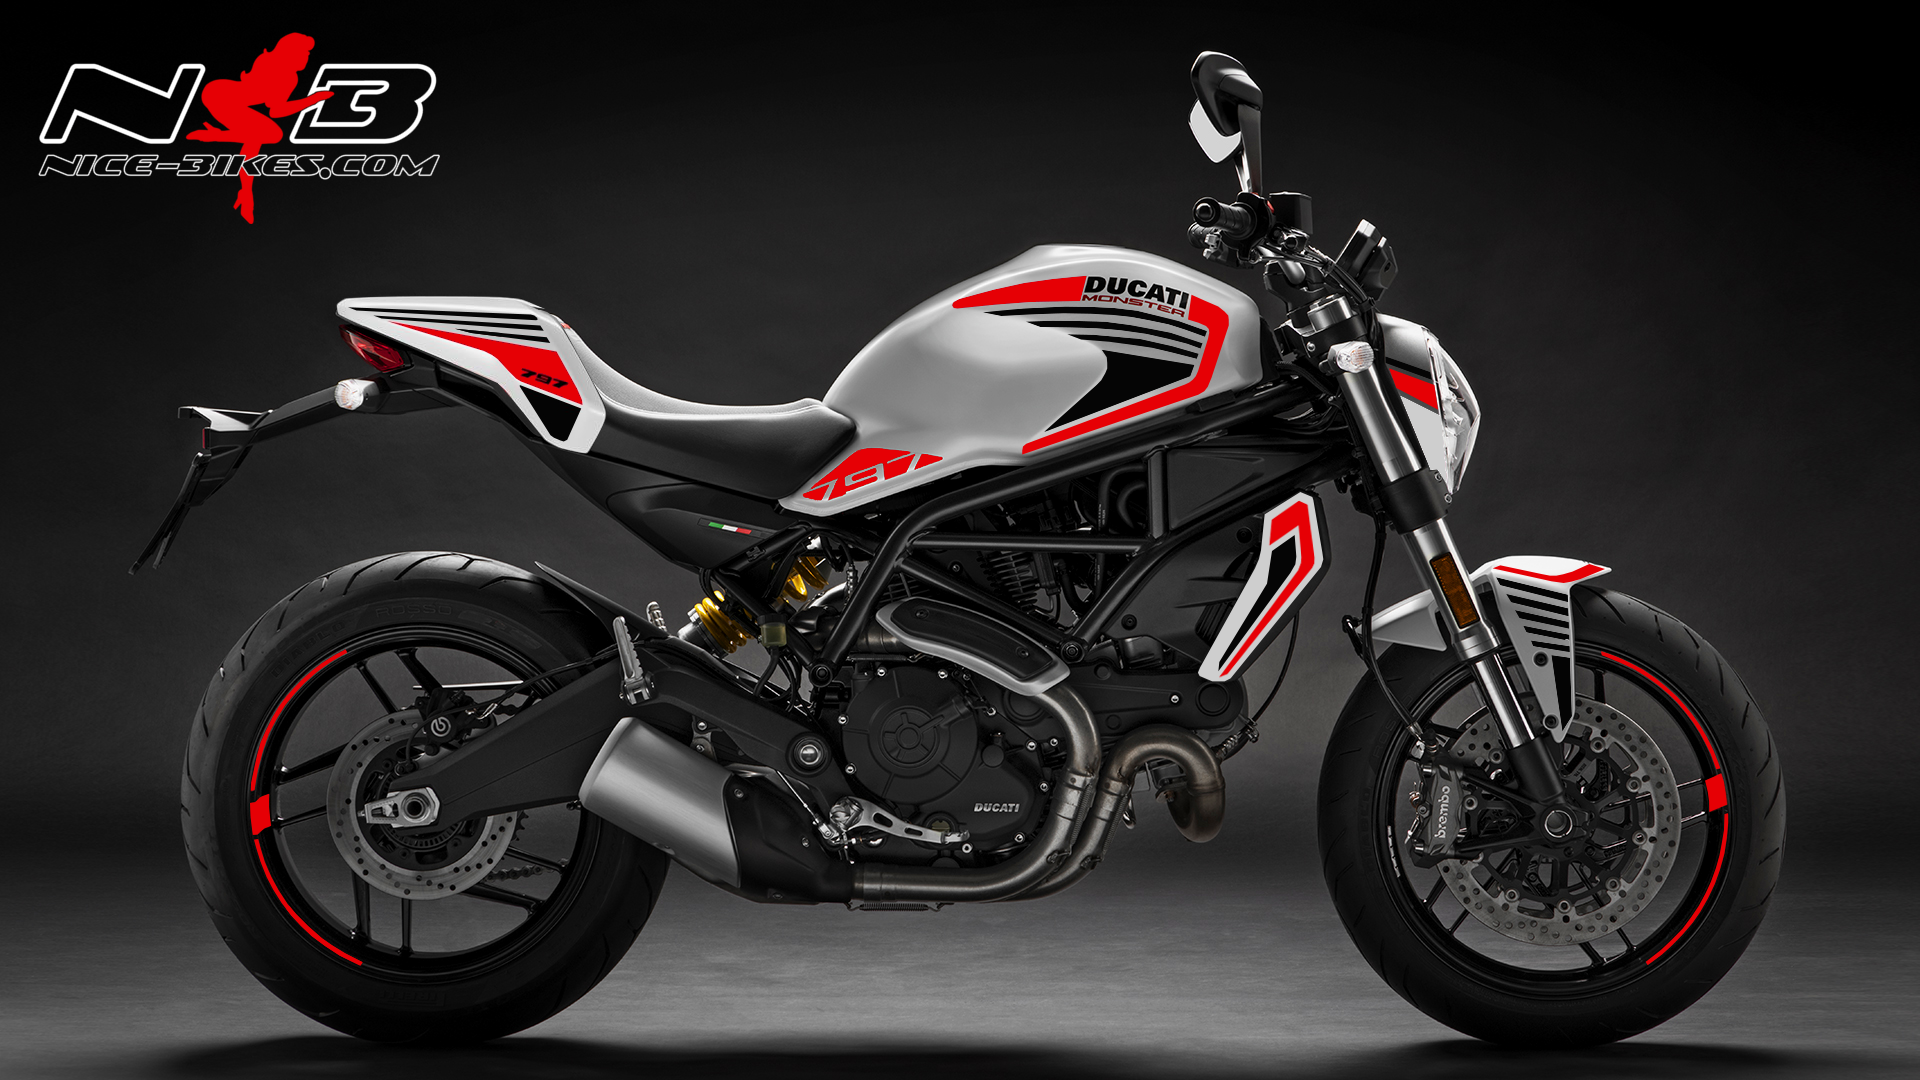 Foliendesign DUCATI  Monster 797 Bj. 2020 Racing Red